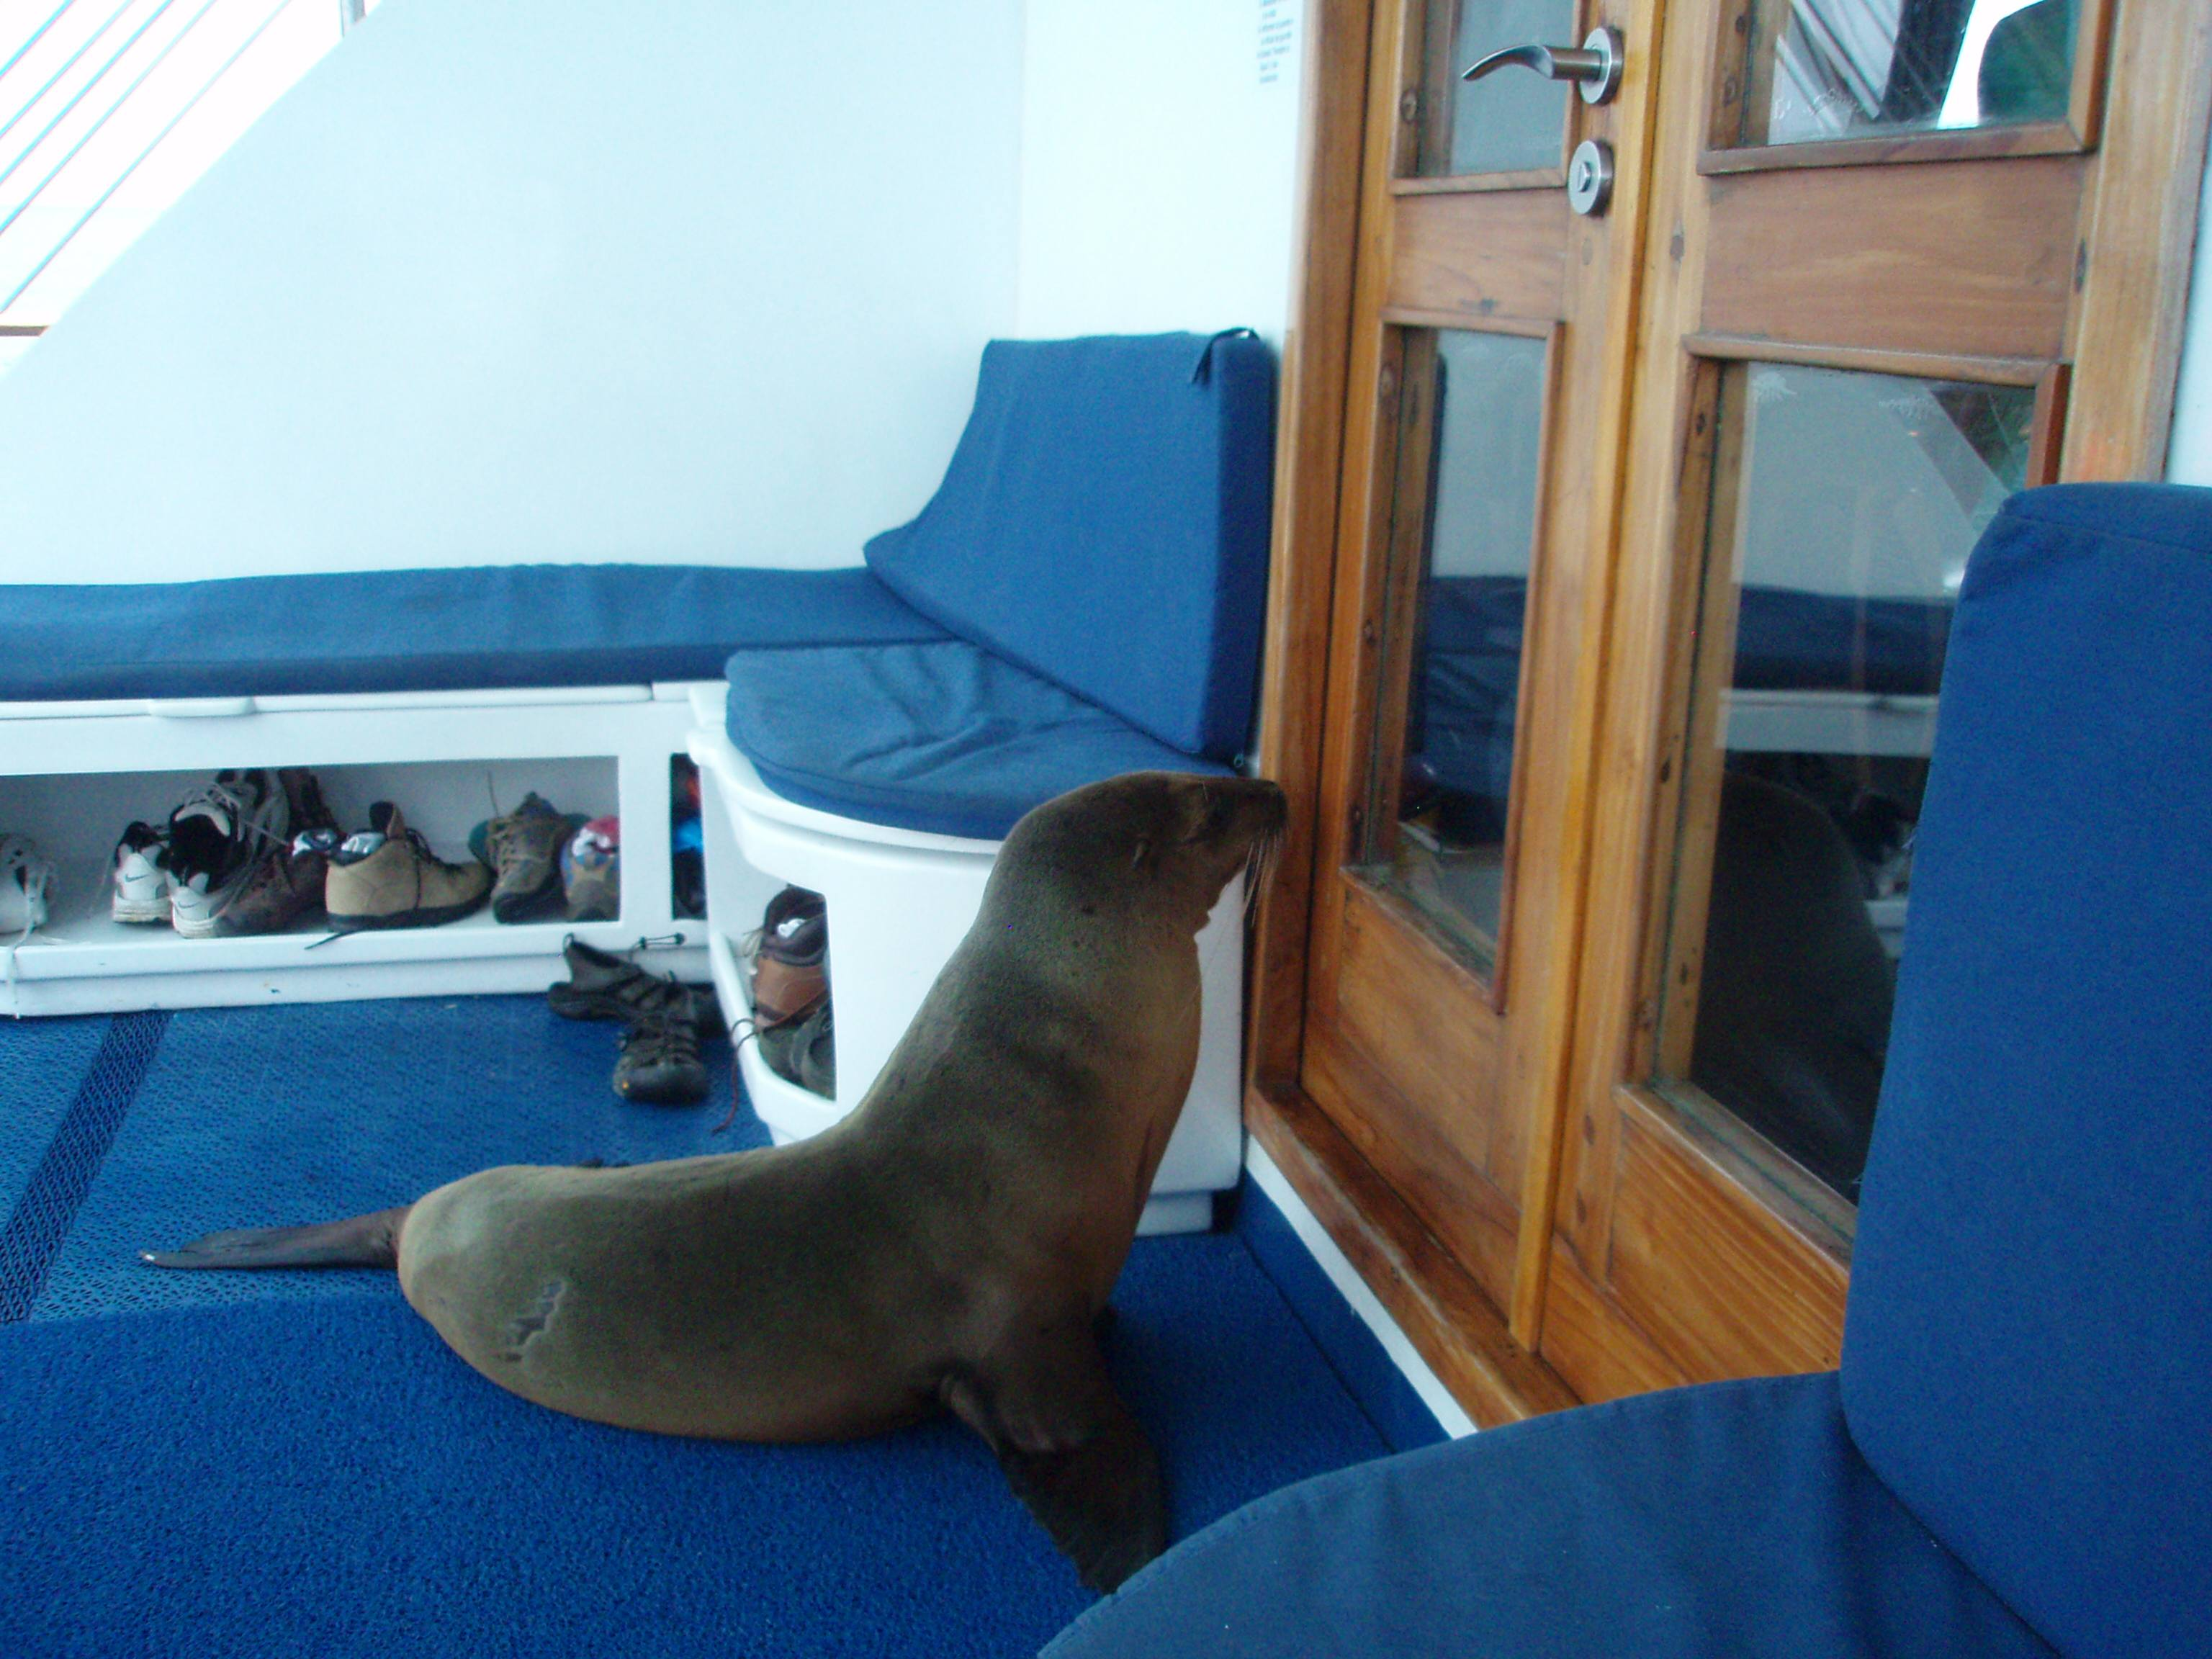 The sea lion who climbed onto our boat.